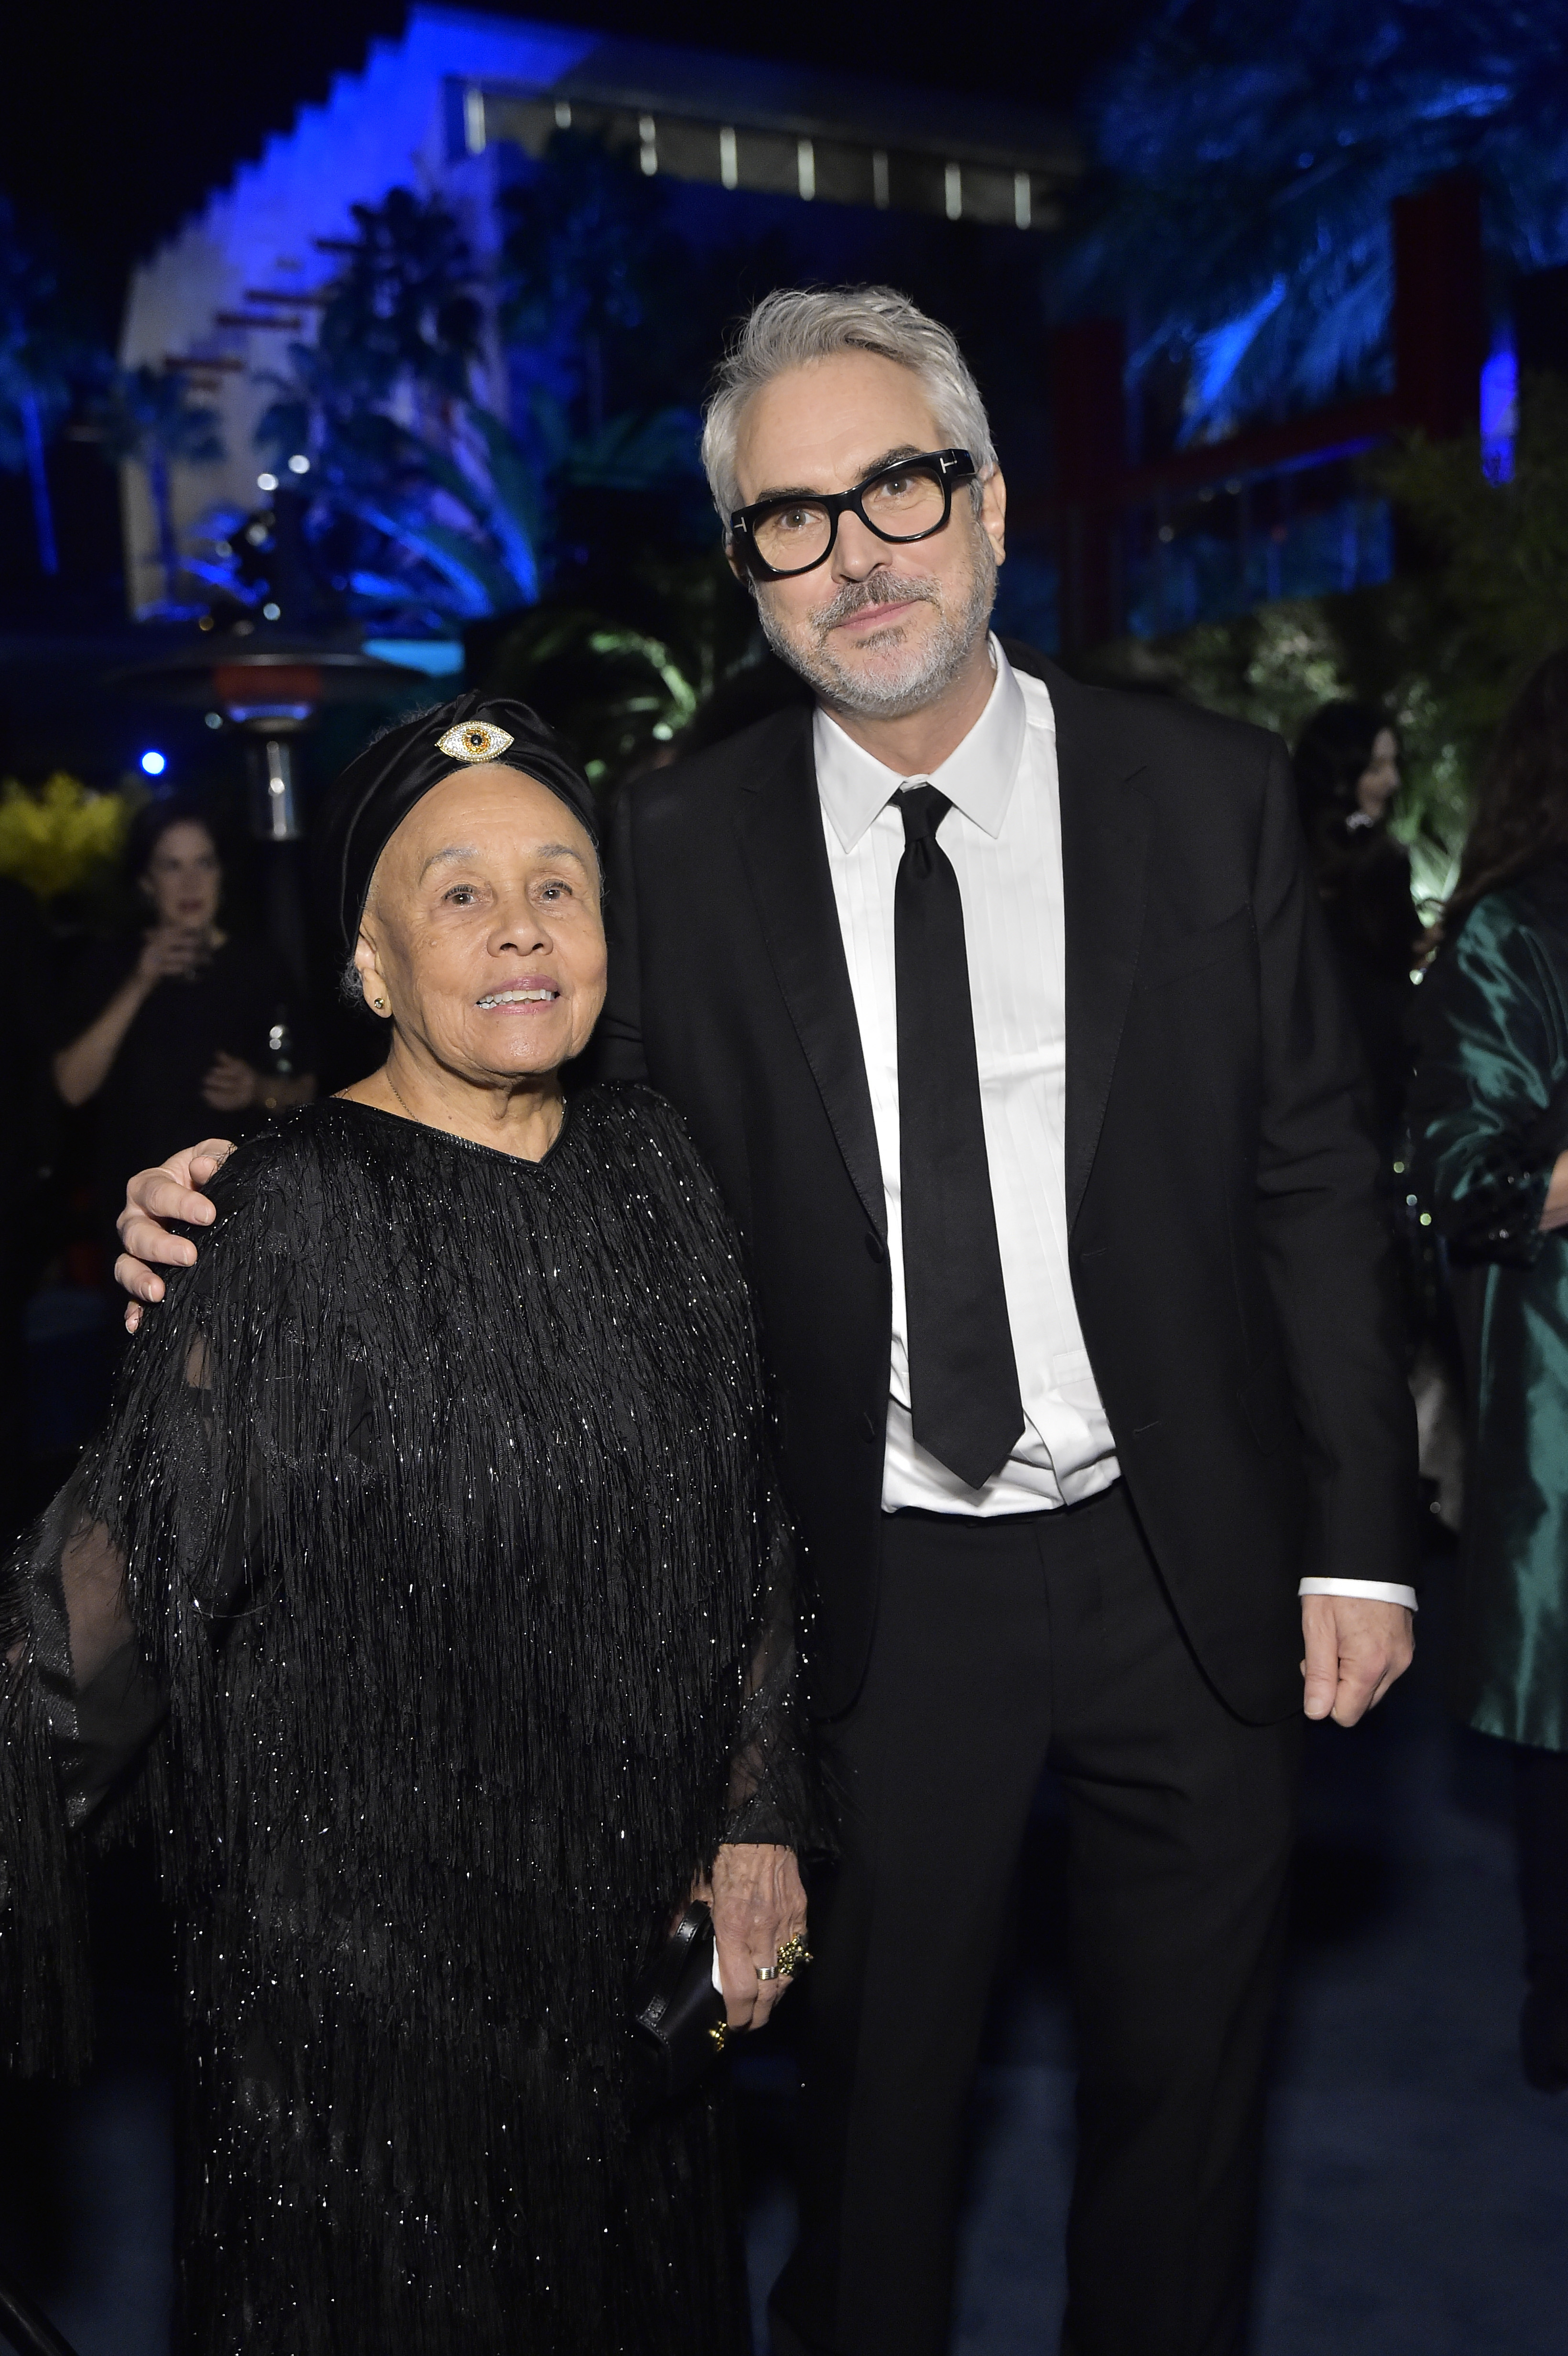 Honorees Betye Saar and Alfonso Cuarón, photo by Stefanie Keenan/Getty Images for LACMA